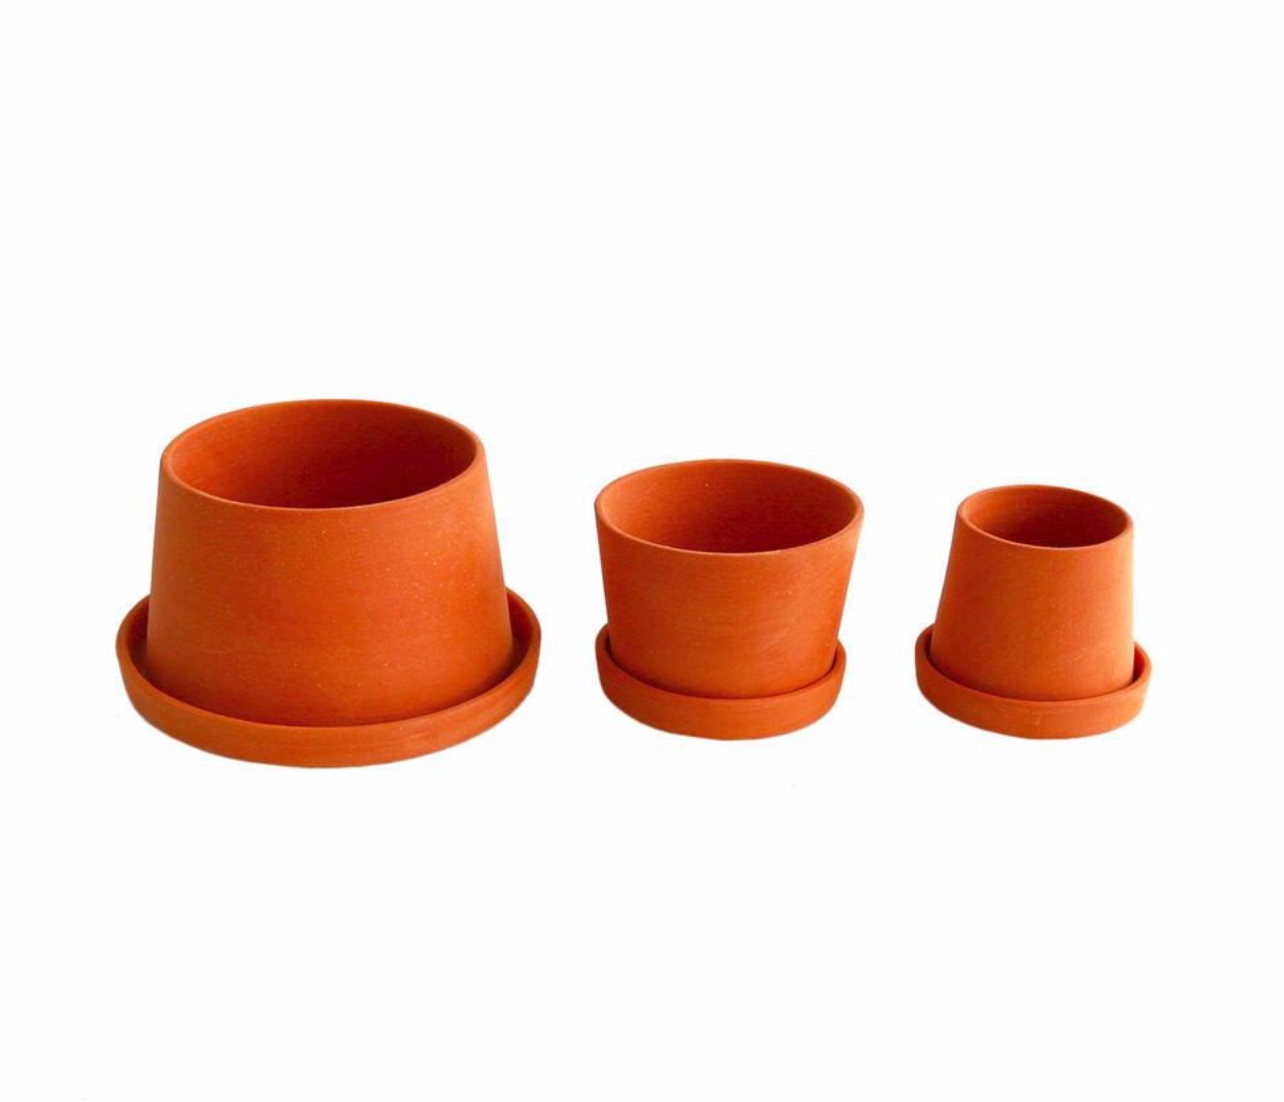 "2-4"" Michiko Shimada Set of 3 Mini Planters in Terracotta - Set A"